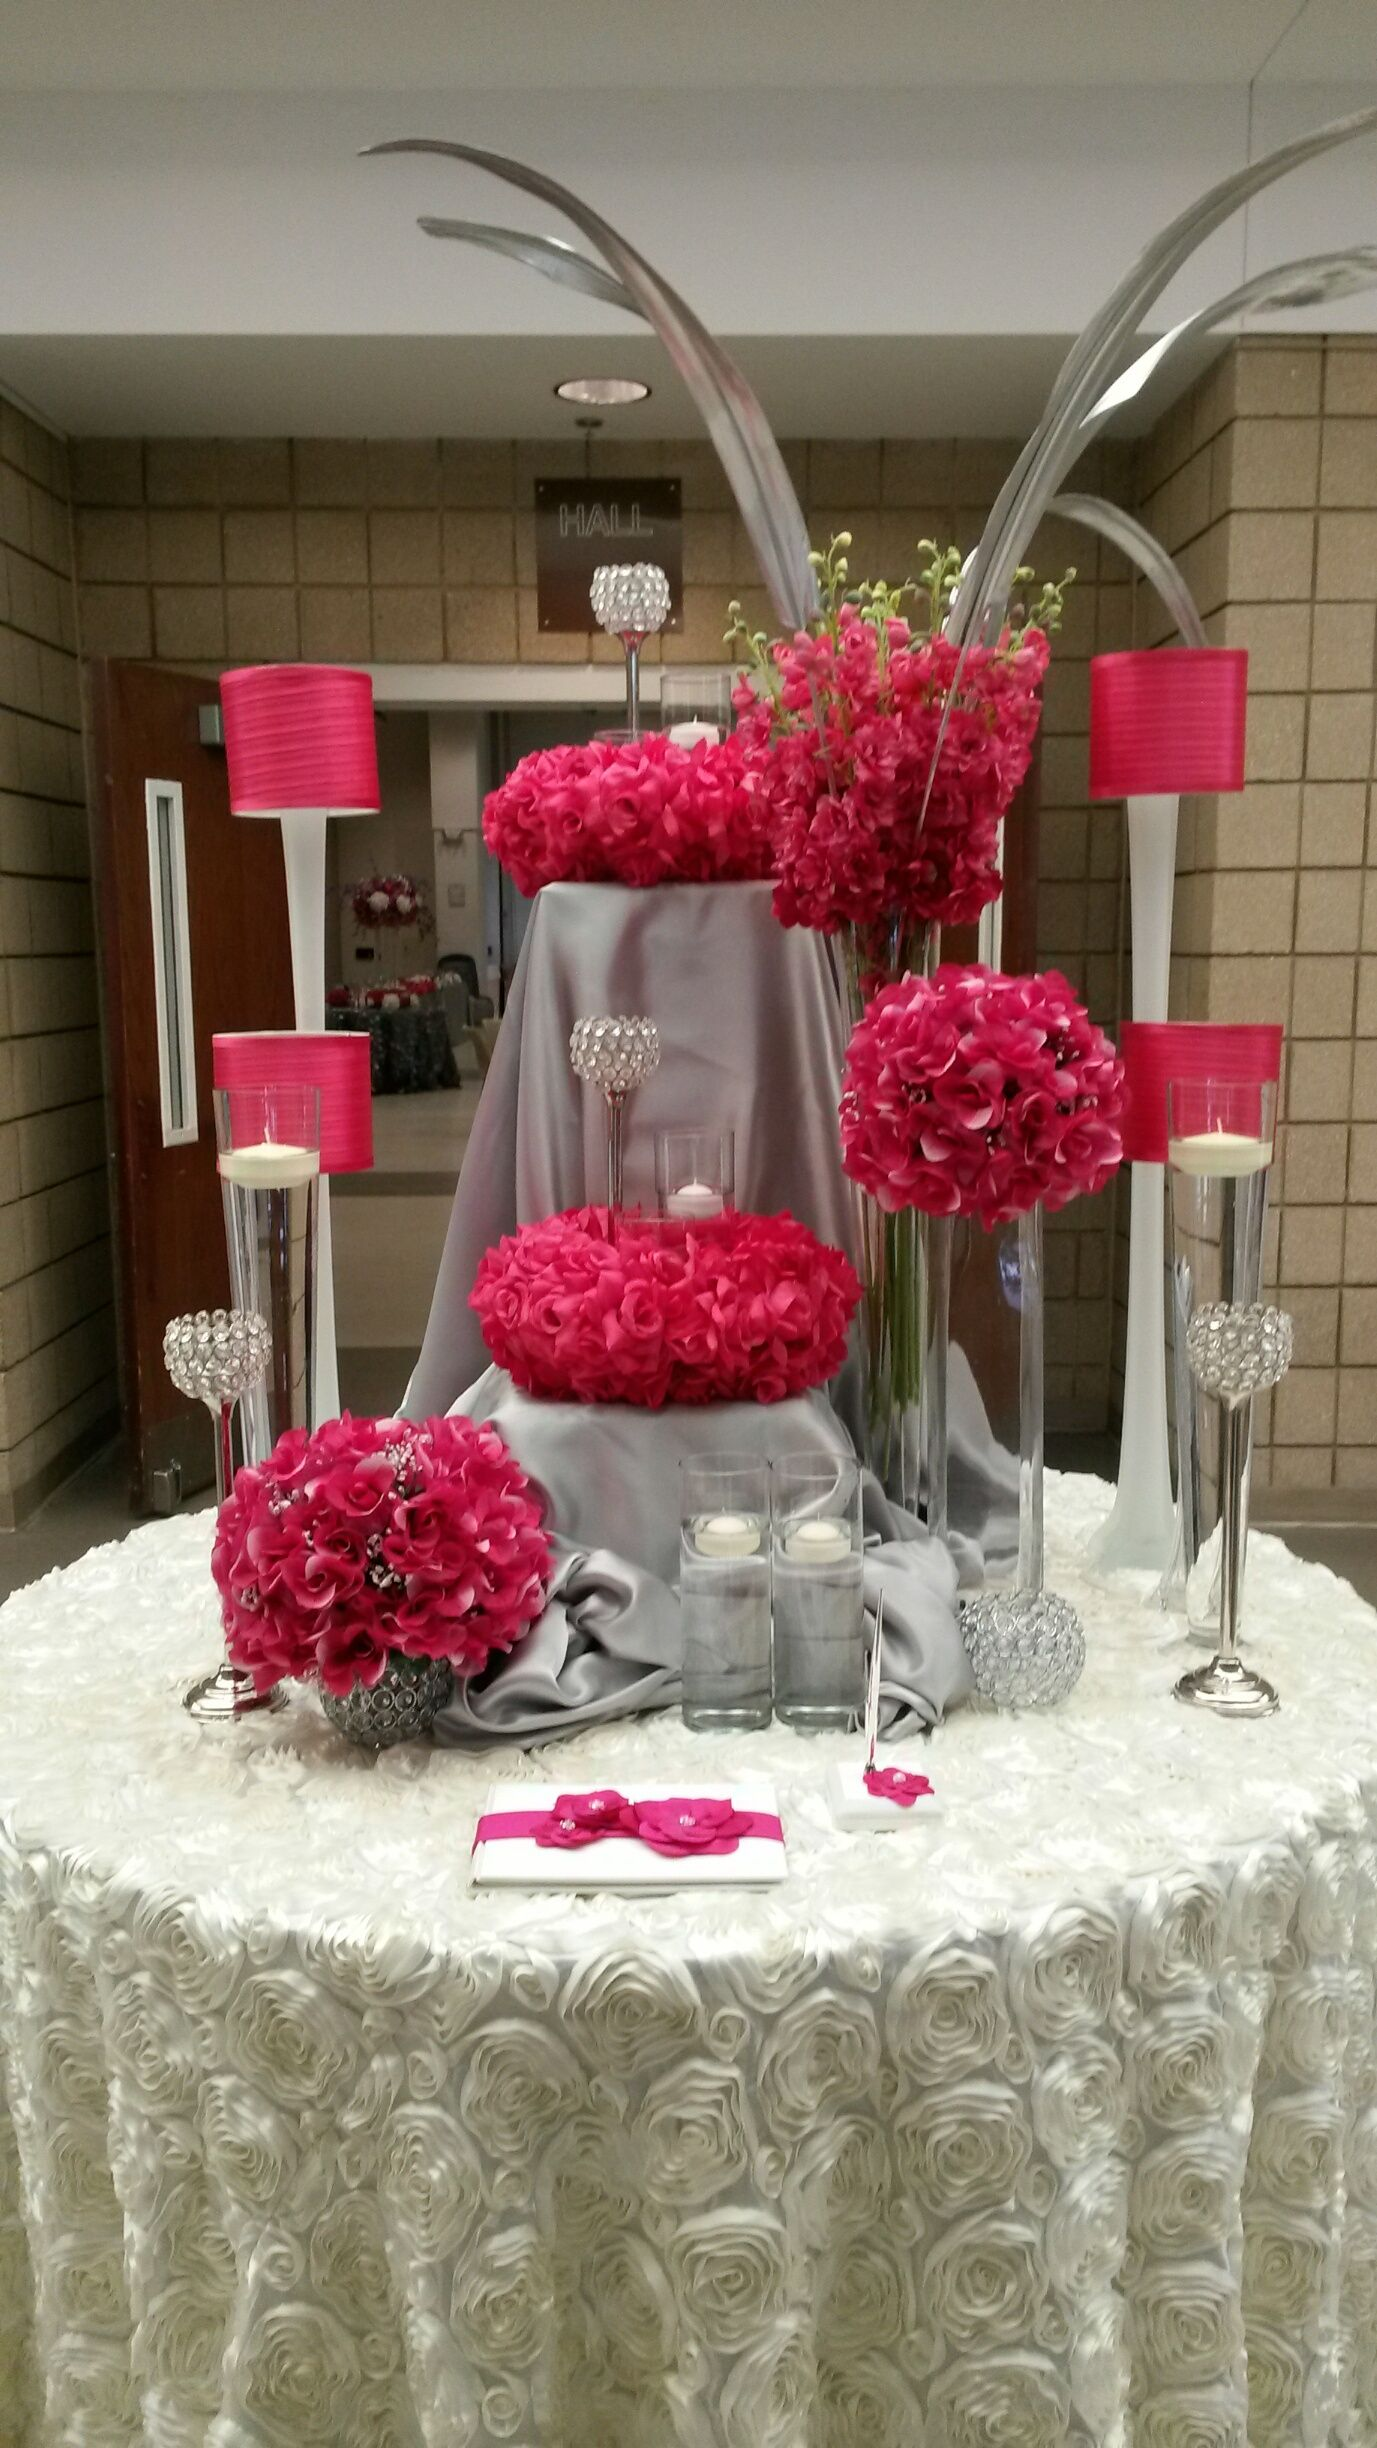 Décor Done By Heaven Angels Events www heavenangels net | DSA